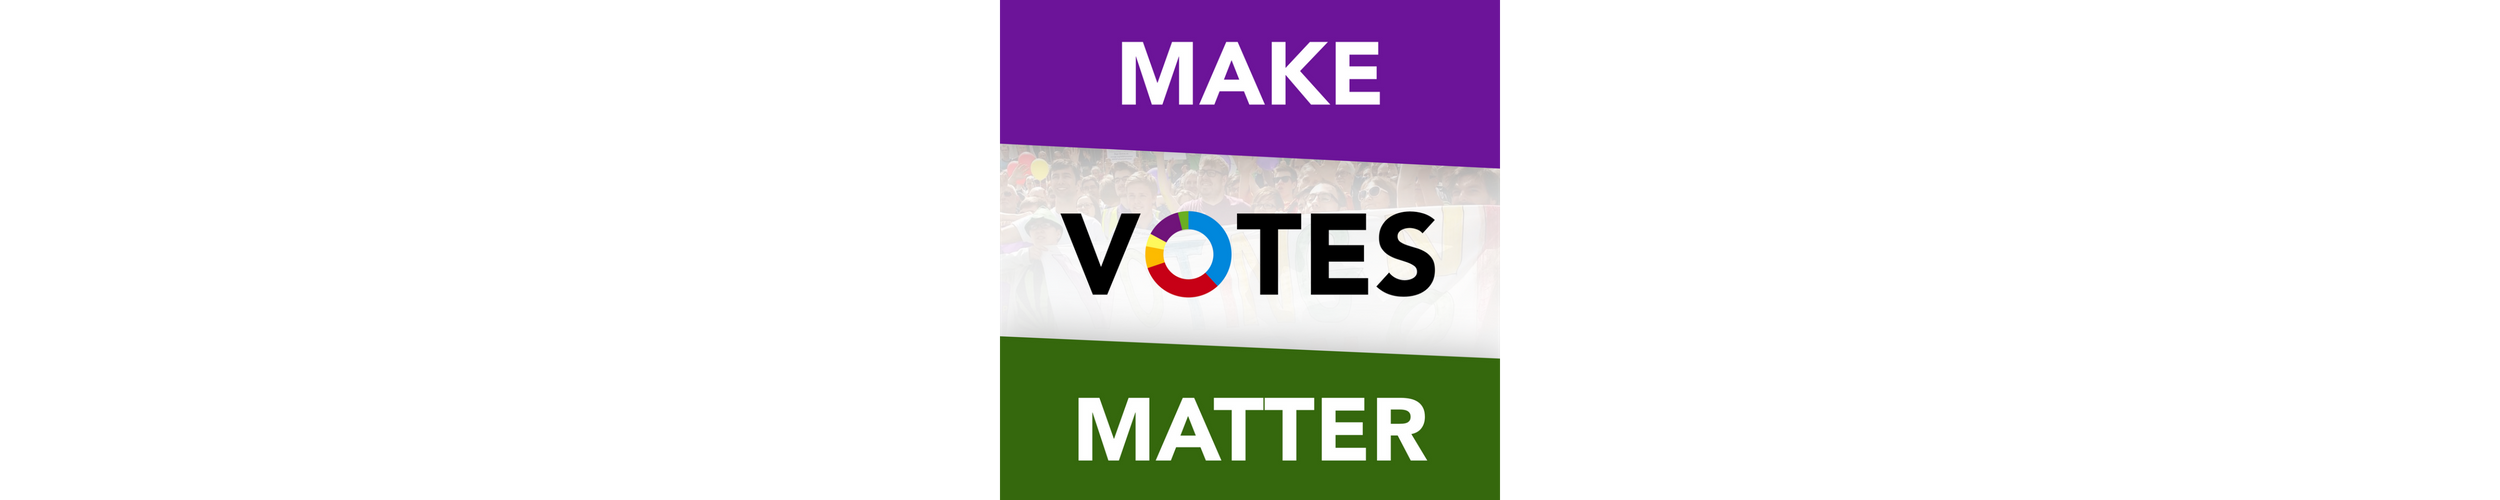 Make Votes Matter.png